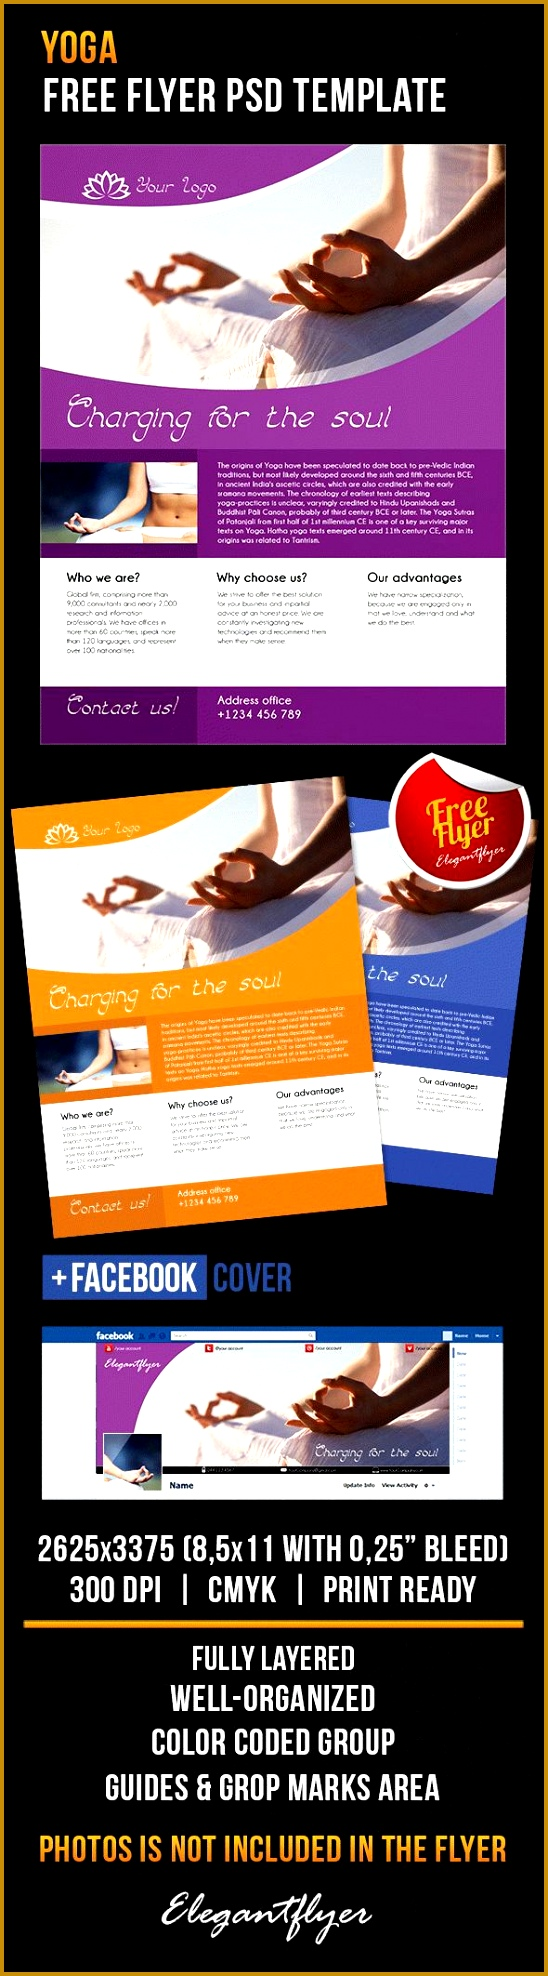 Yoga – Free Flyer PSD Template Cover 5481976